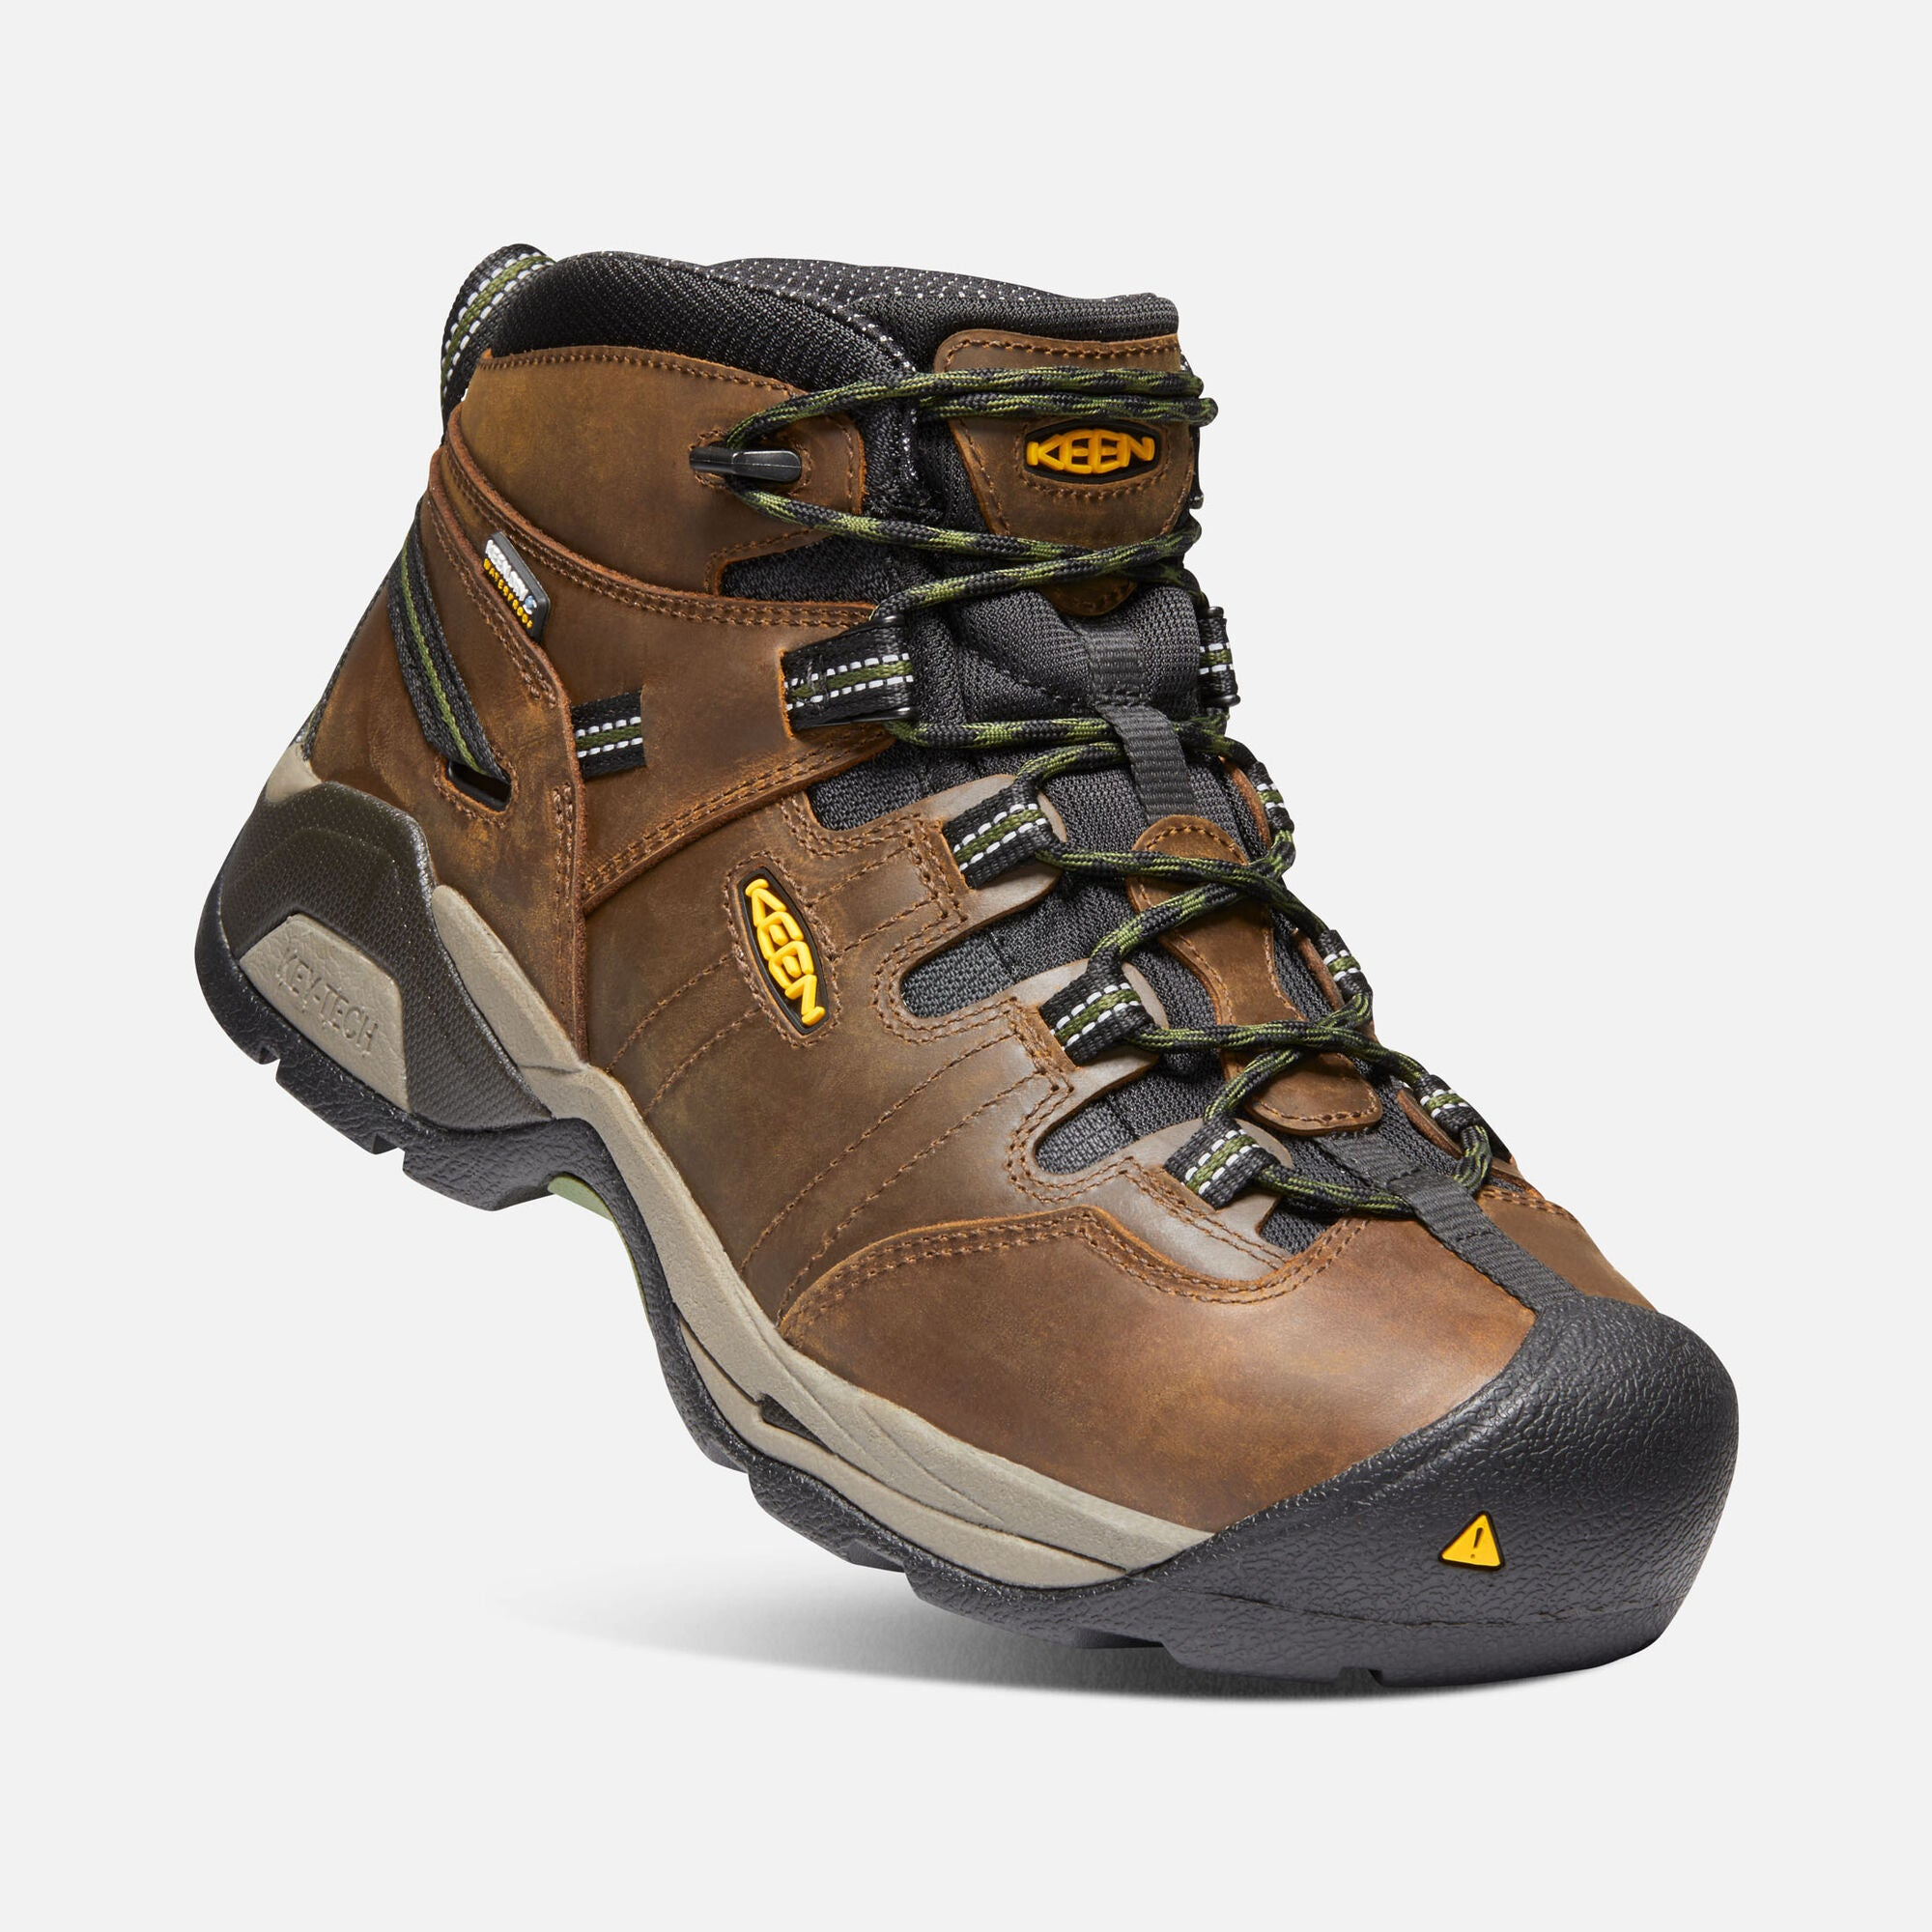 Keen MEN'S DETROIT XT WATERPROOF BOOT (STEEL TOE) 1020085